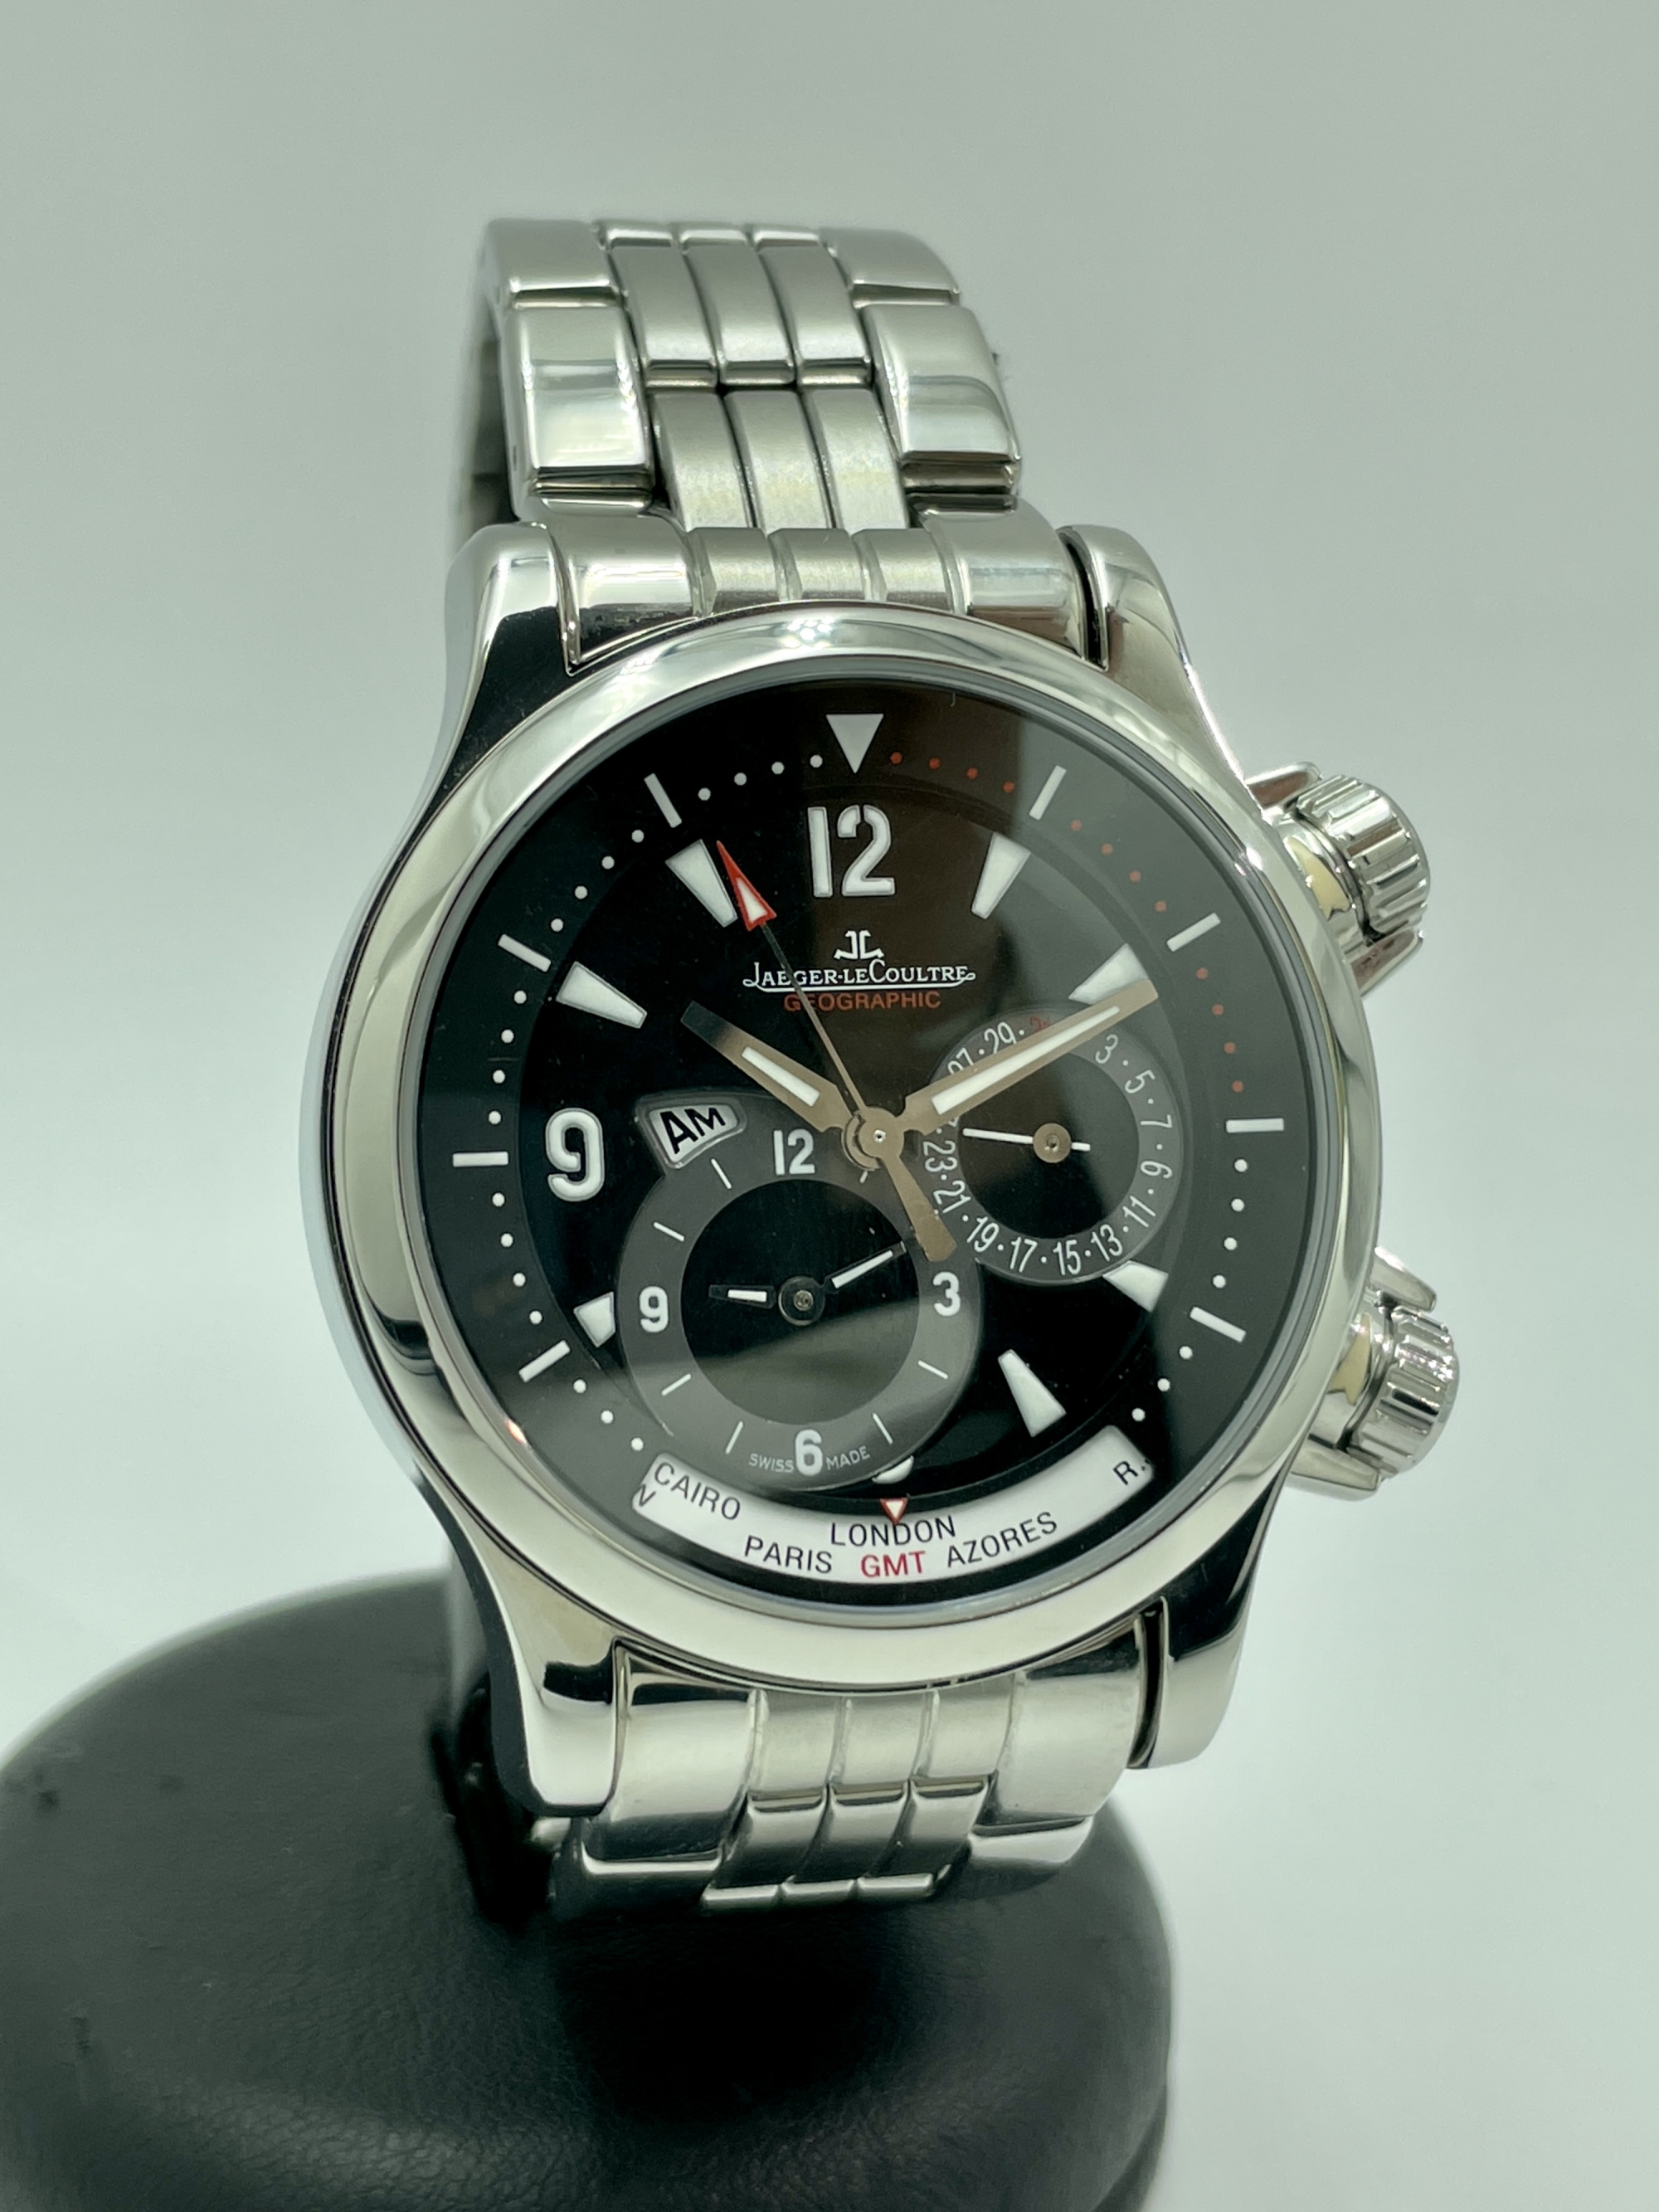 Jaeger-lecoultre Master Compressor Geographic GMT 41MM Steel Like New Box and Papers 146.8.83 Q1718470 2004